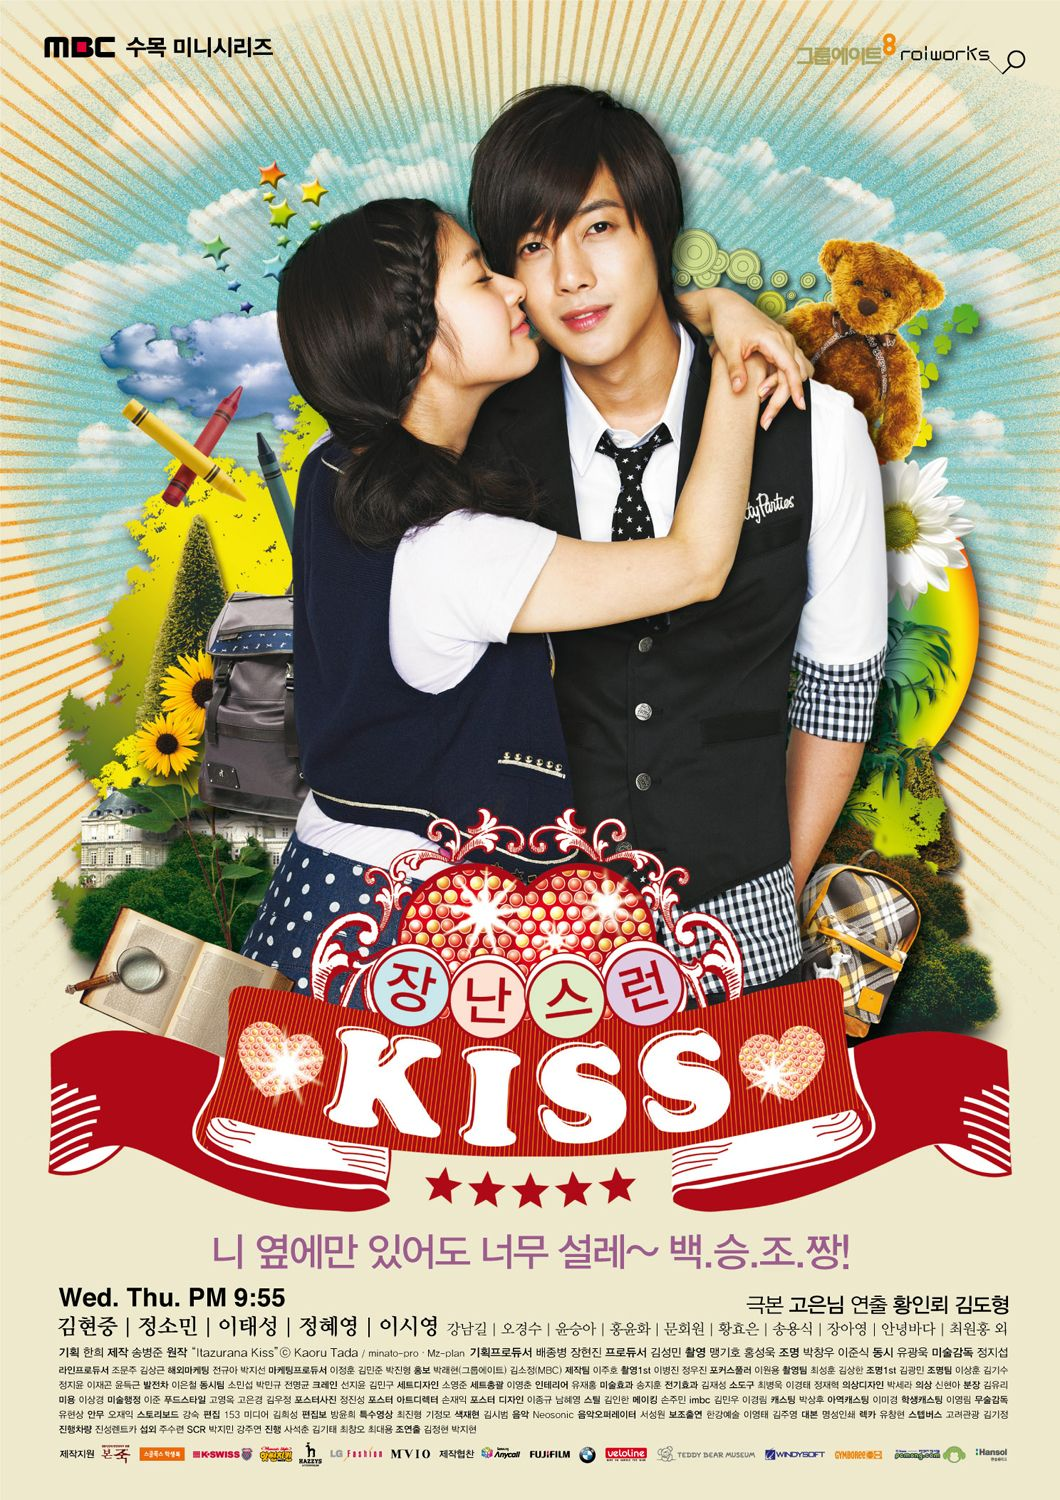 Want To Win A Poster Of Playful Kiss Suscribe To Our K Drama Youtube Channel Leave A Comment Saying I Subscri Playful Kiss Drama Korea Top Korean Dramas